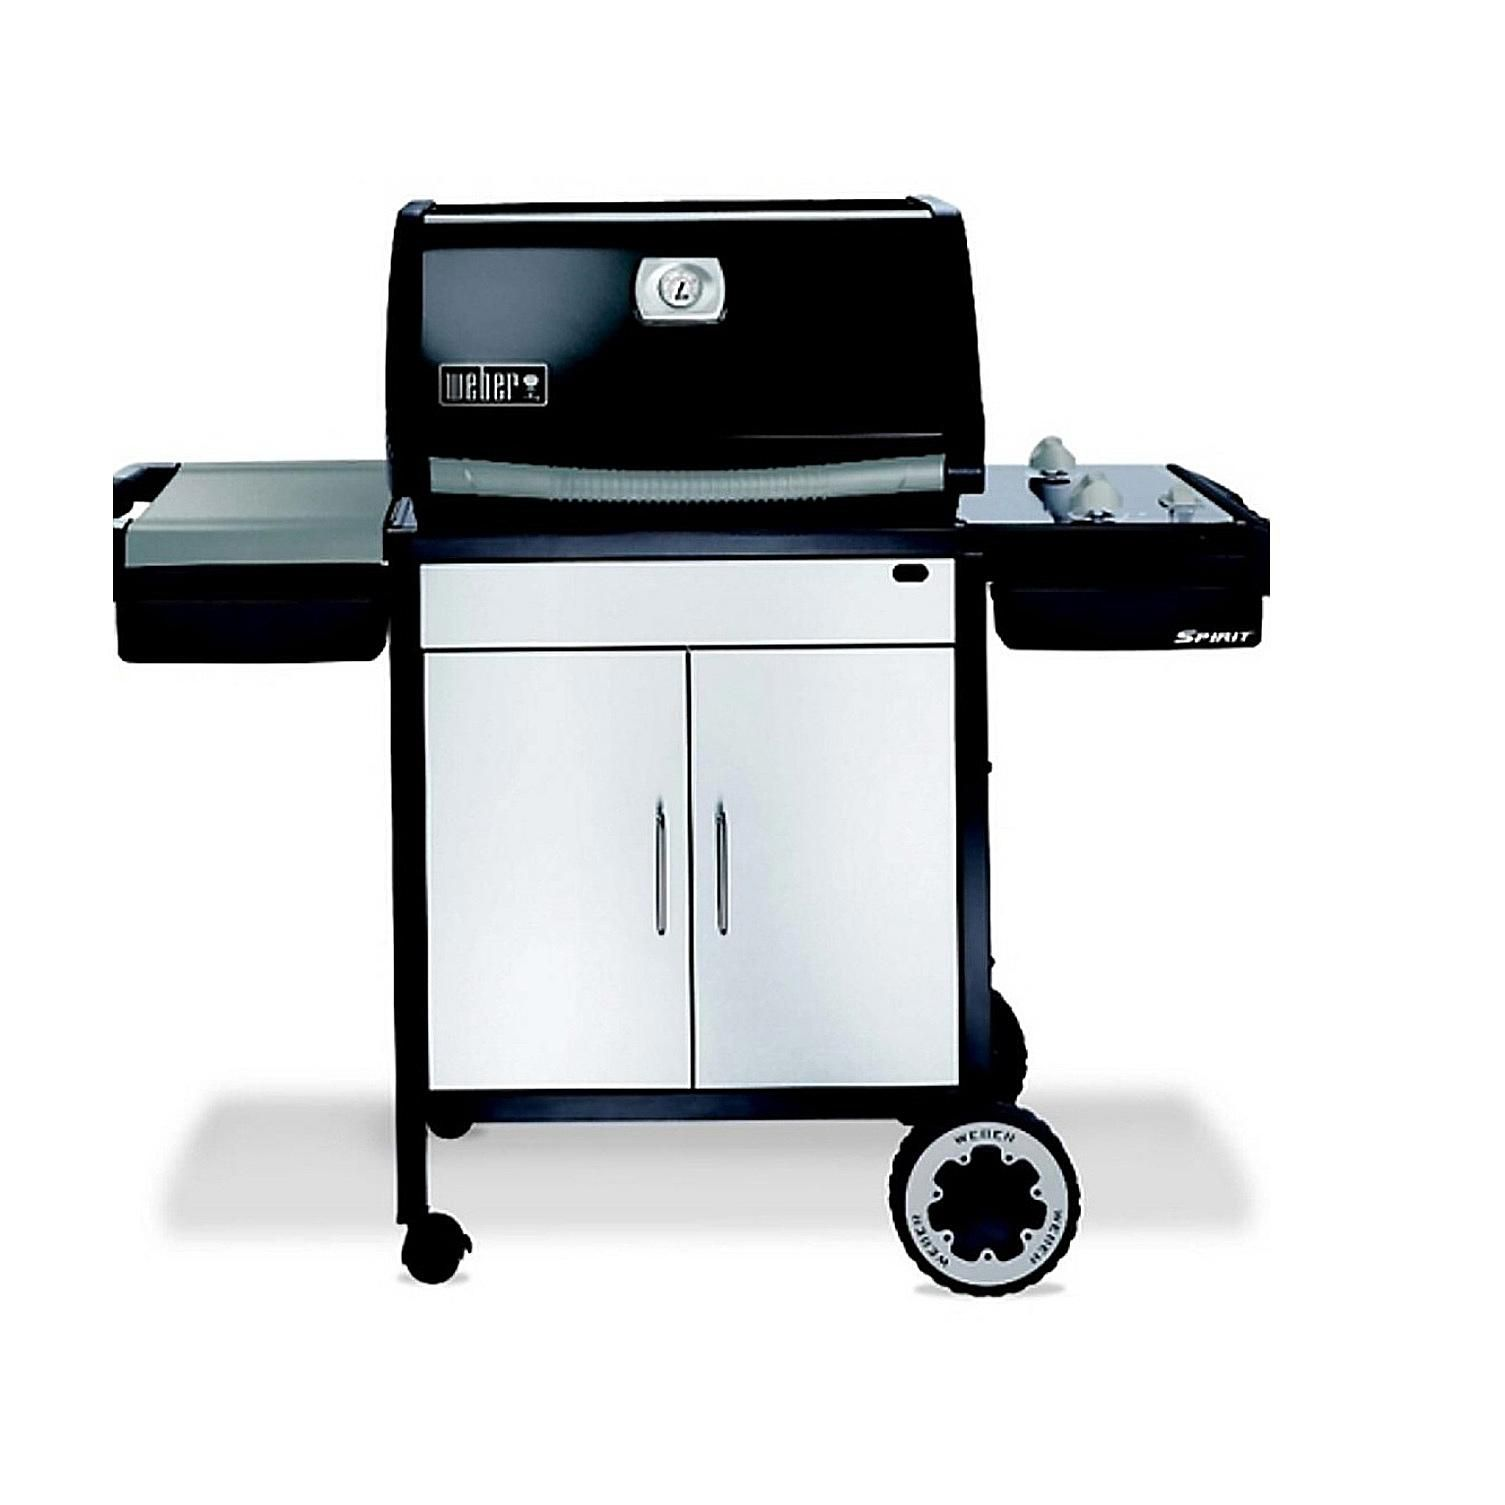 weber spirit e 310 gas grill review. Black Bedroom Furniture Sets. Home Design Ideas